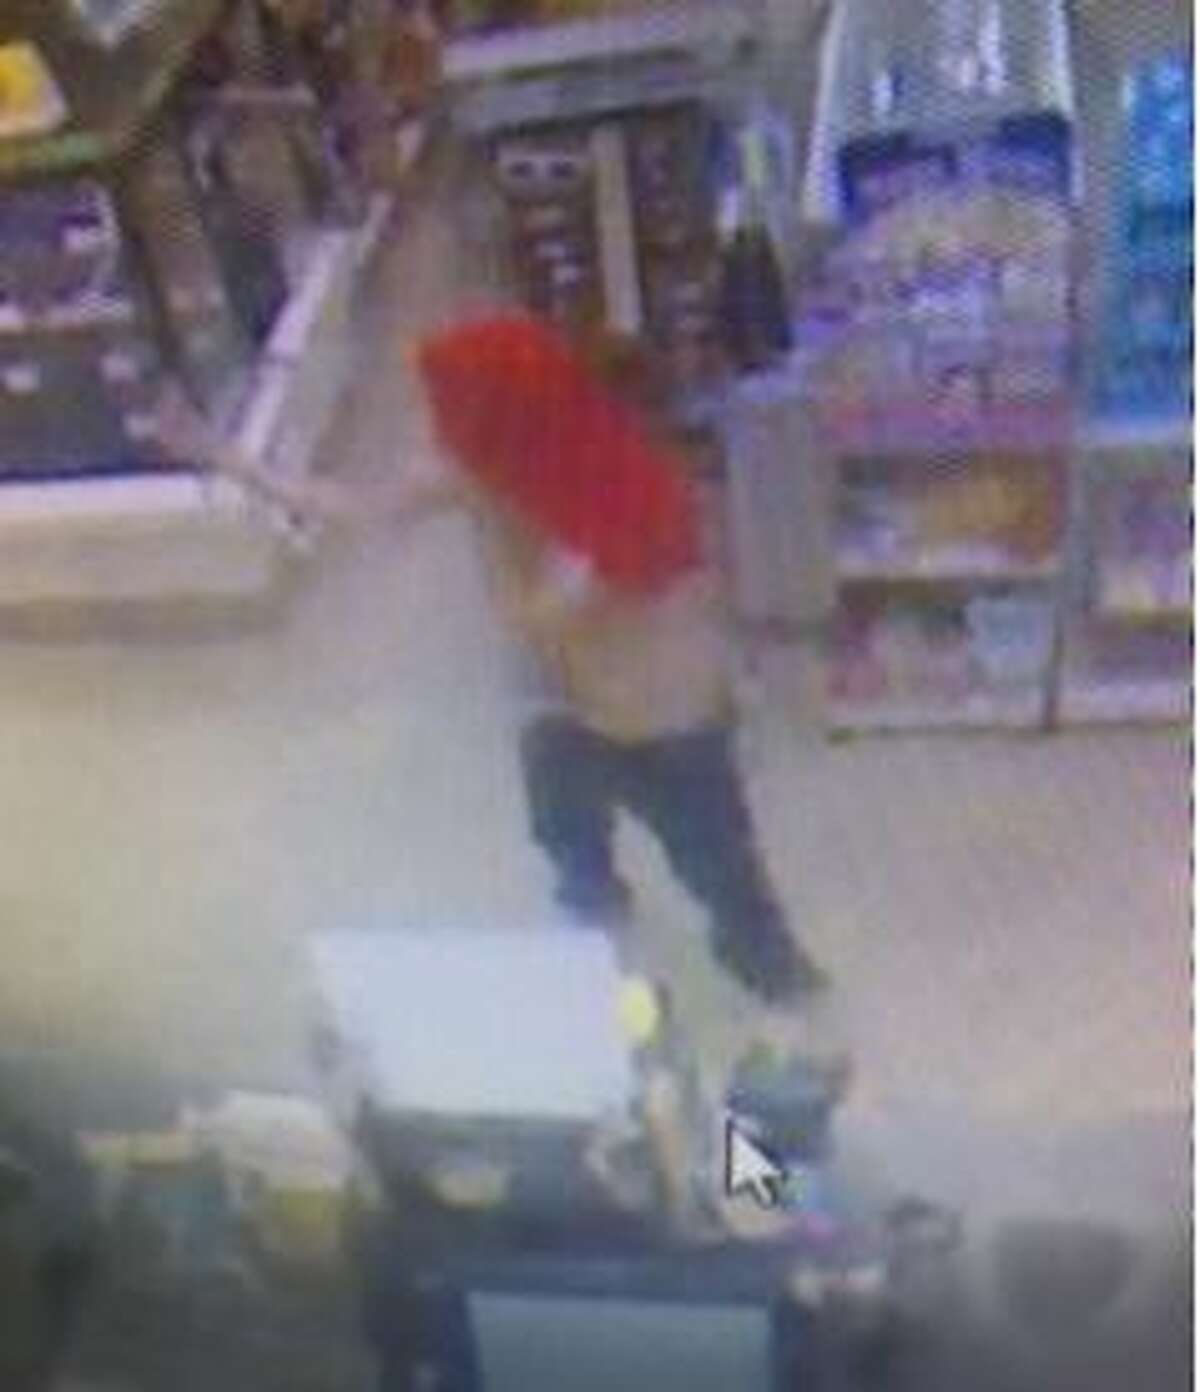 A man believed to be in his early 20s is wanted in an attempted robbery Wednesday, Feb. 28, 2018, at a 7-Eleven store in Bonita Springs, Fla., police said.